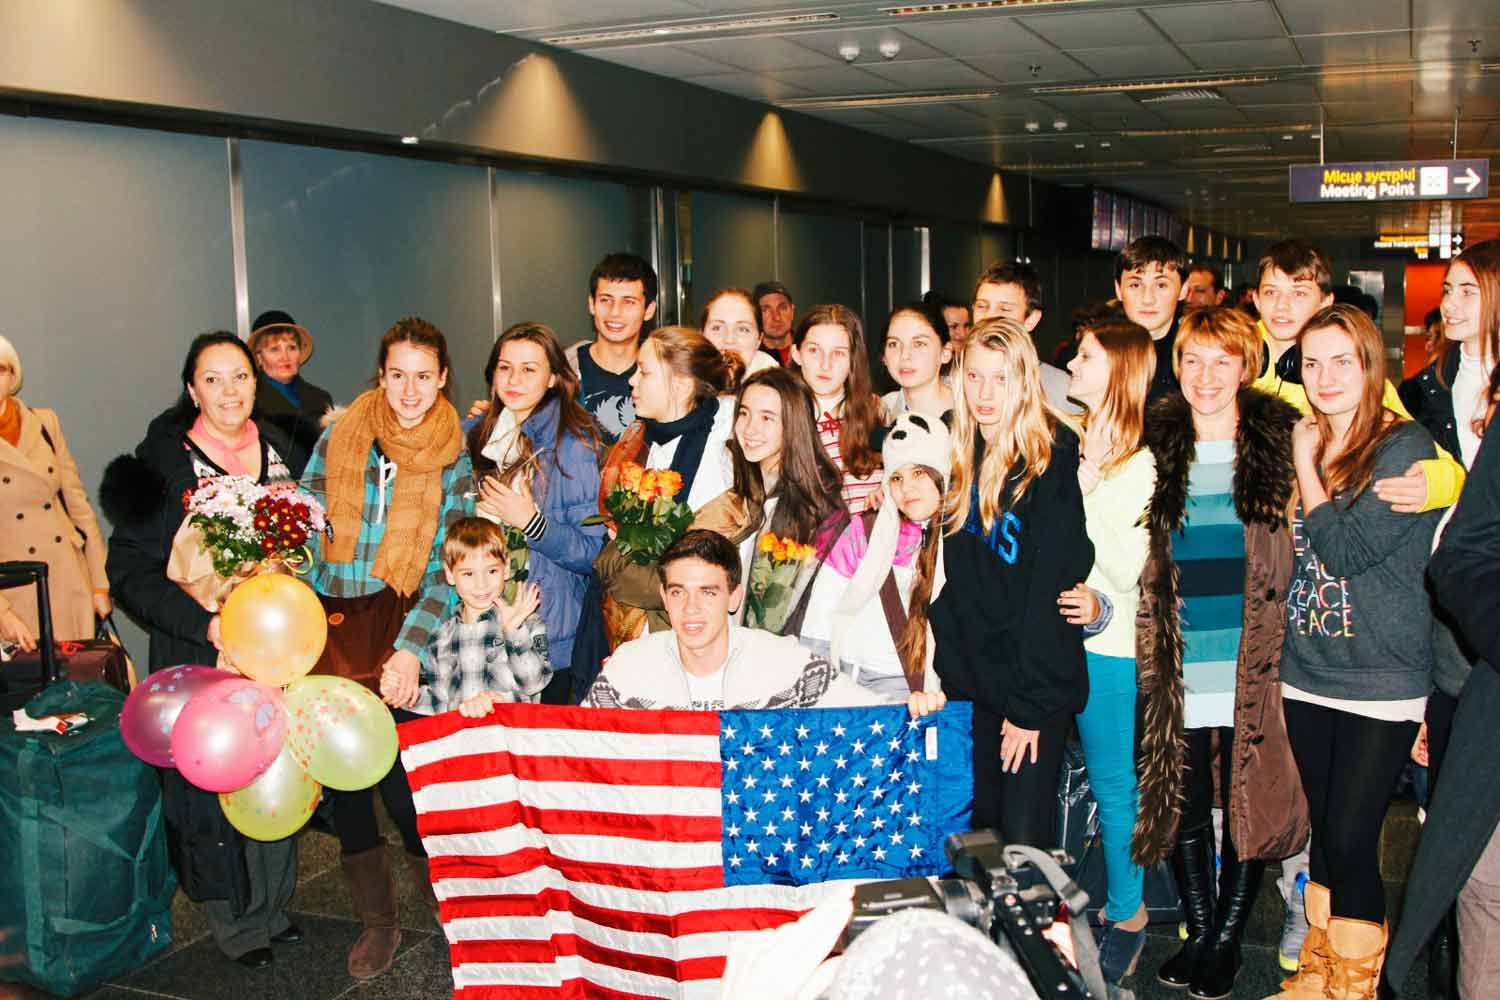 exchange programs in the USA